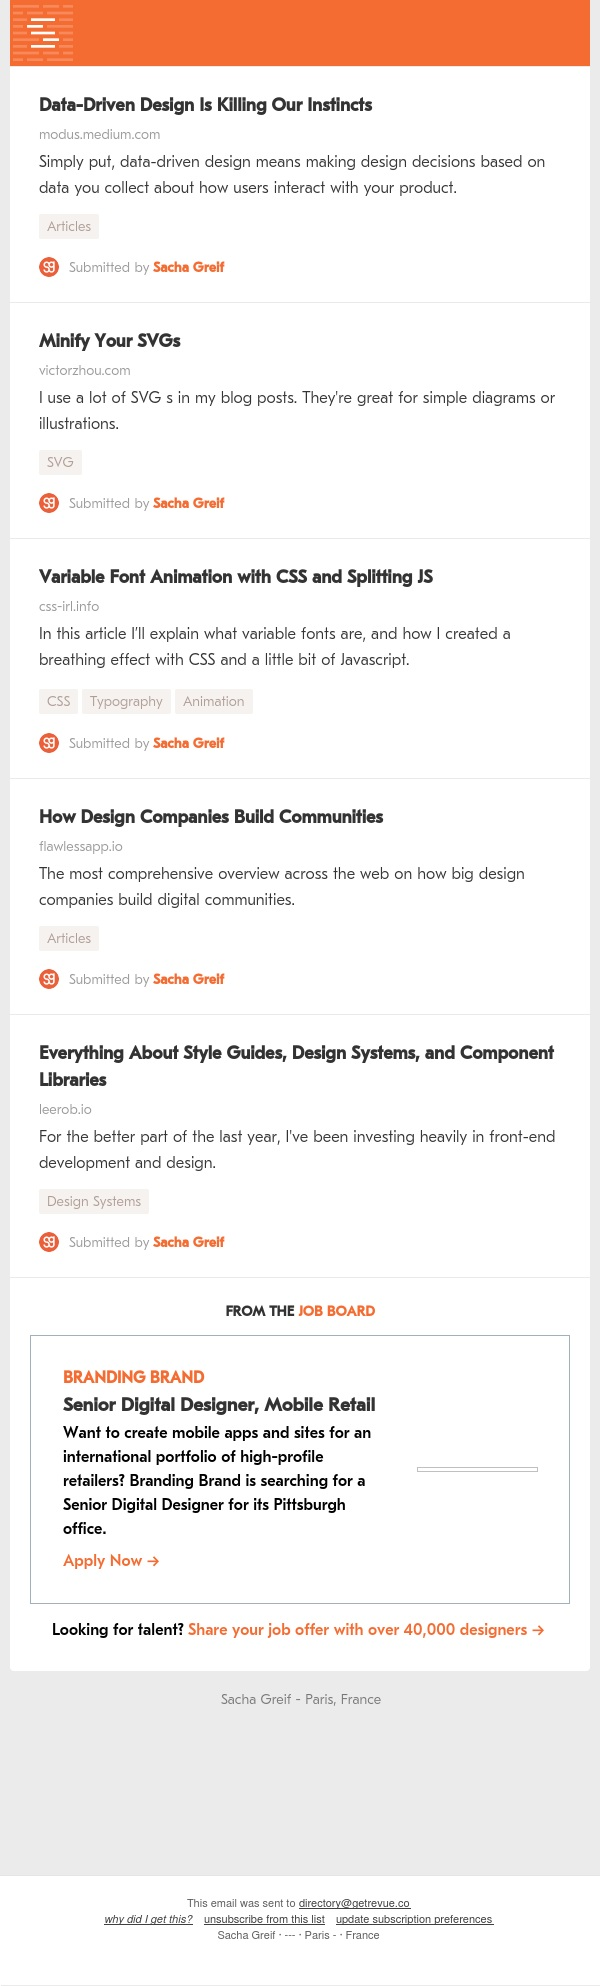 Data-Driven Design, Minified SVGs, Variable Fonts, Design Communities, Style Guides